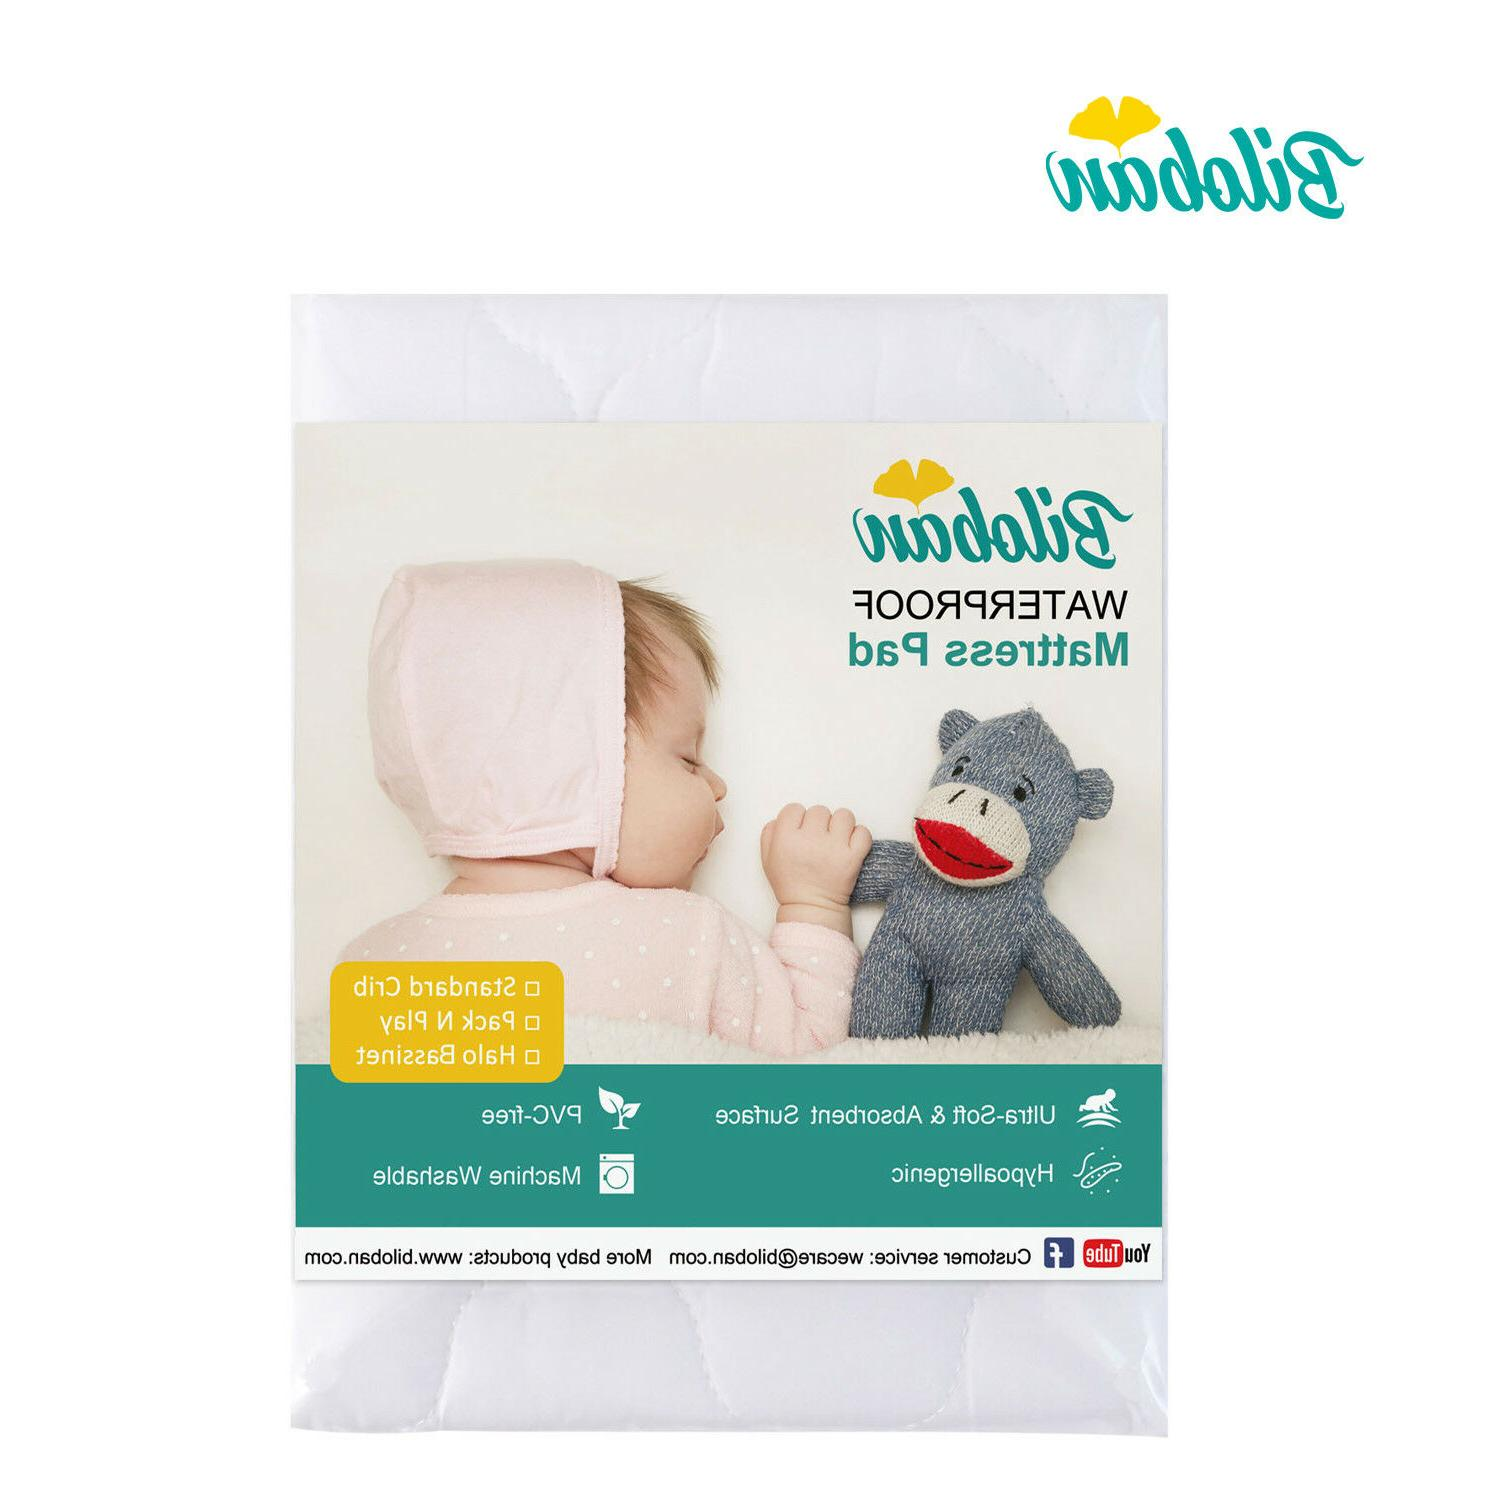 Oval Soft Pad Set Fits for Waterproof